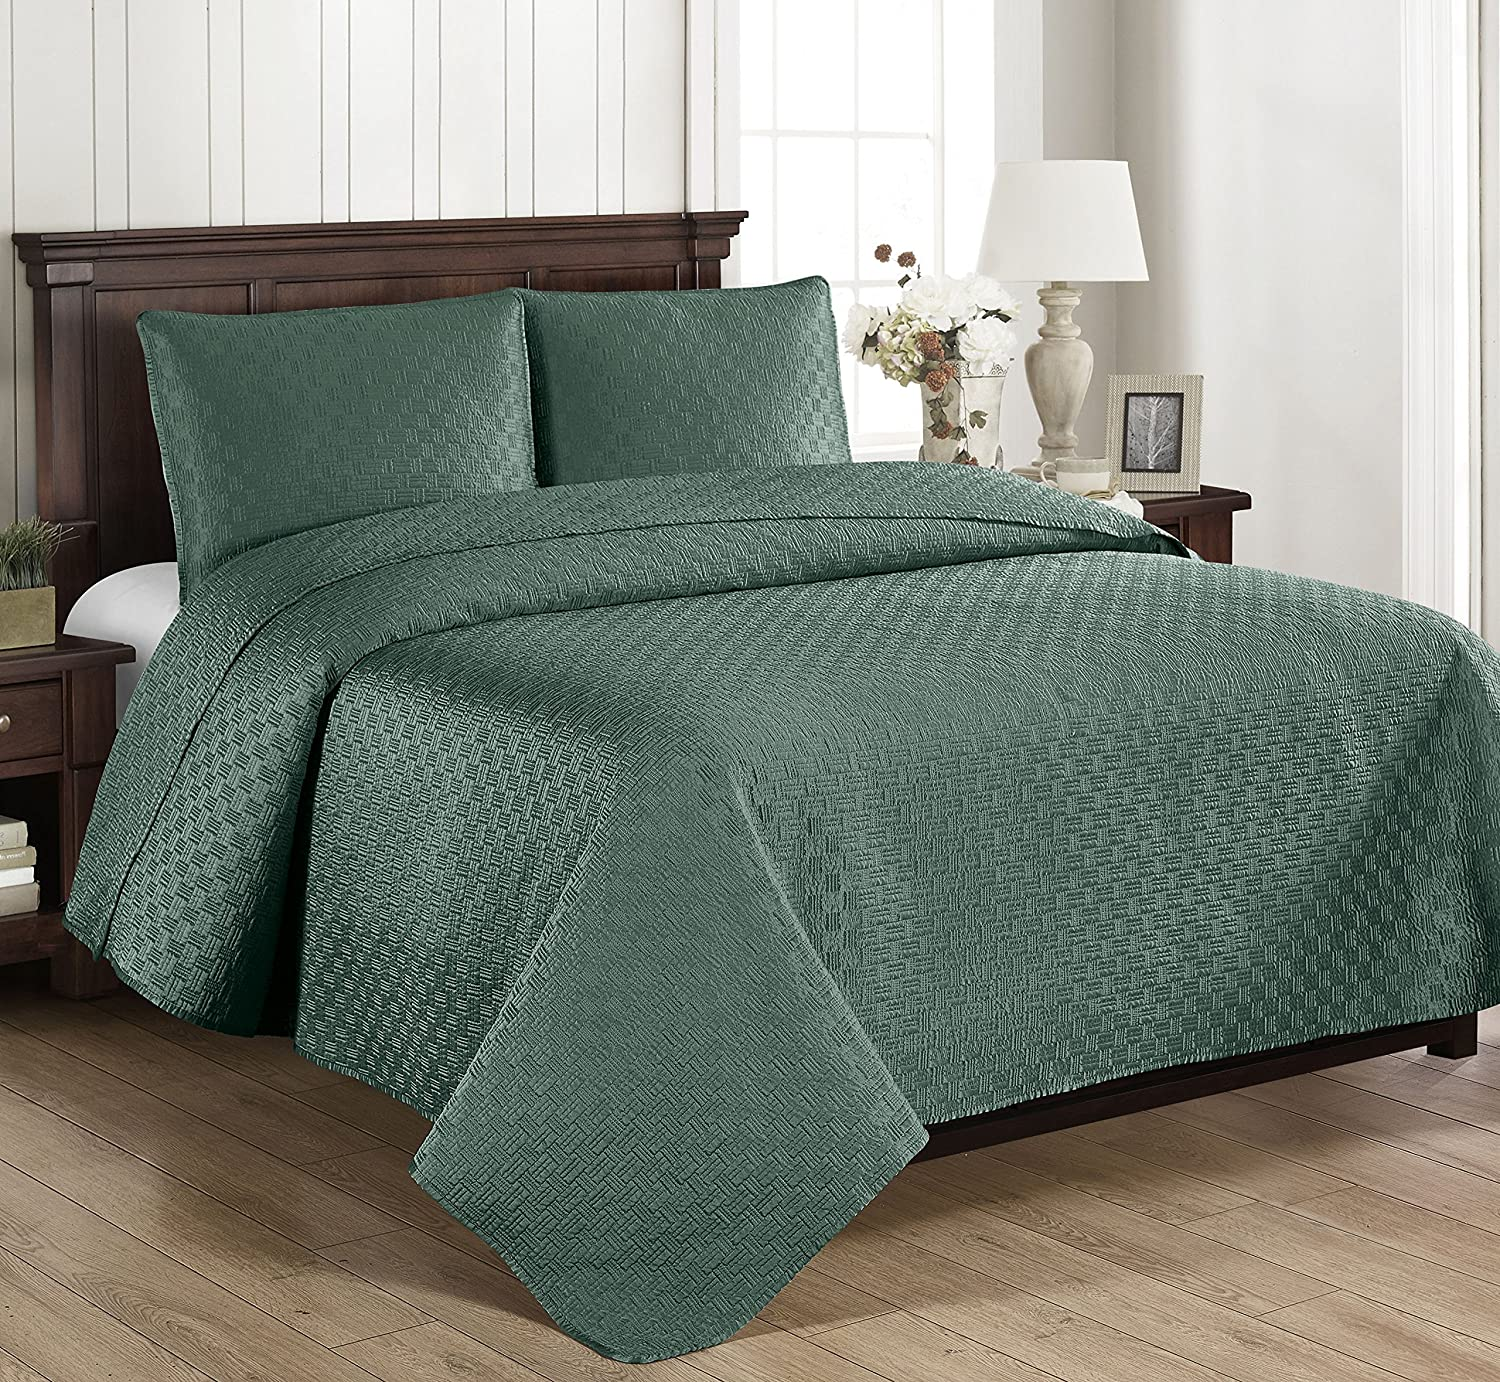 Brielle Basket Weave Quilt Set, Twin, Grey 807000224340